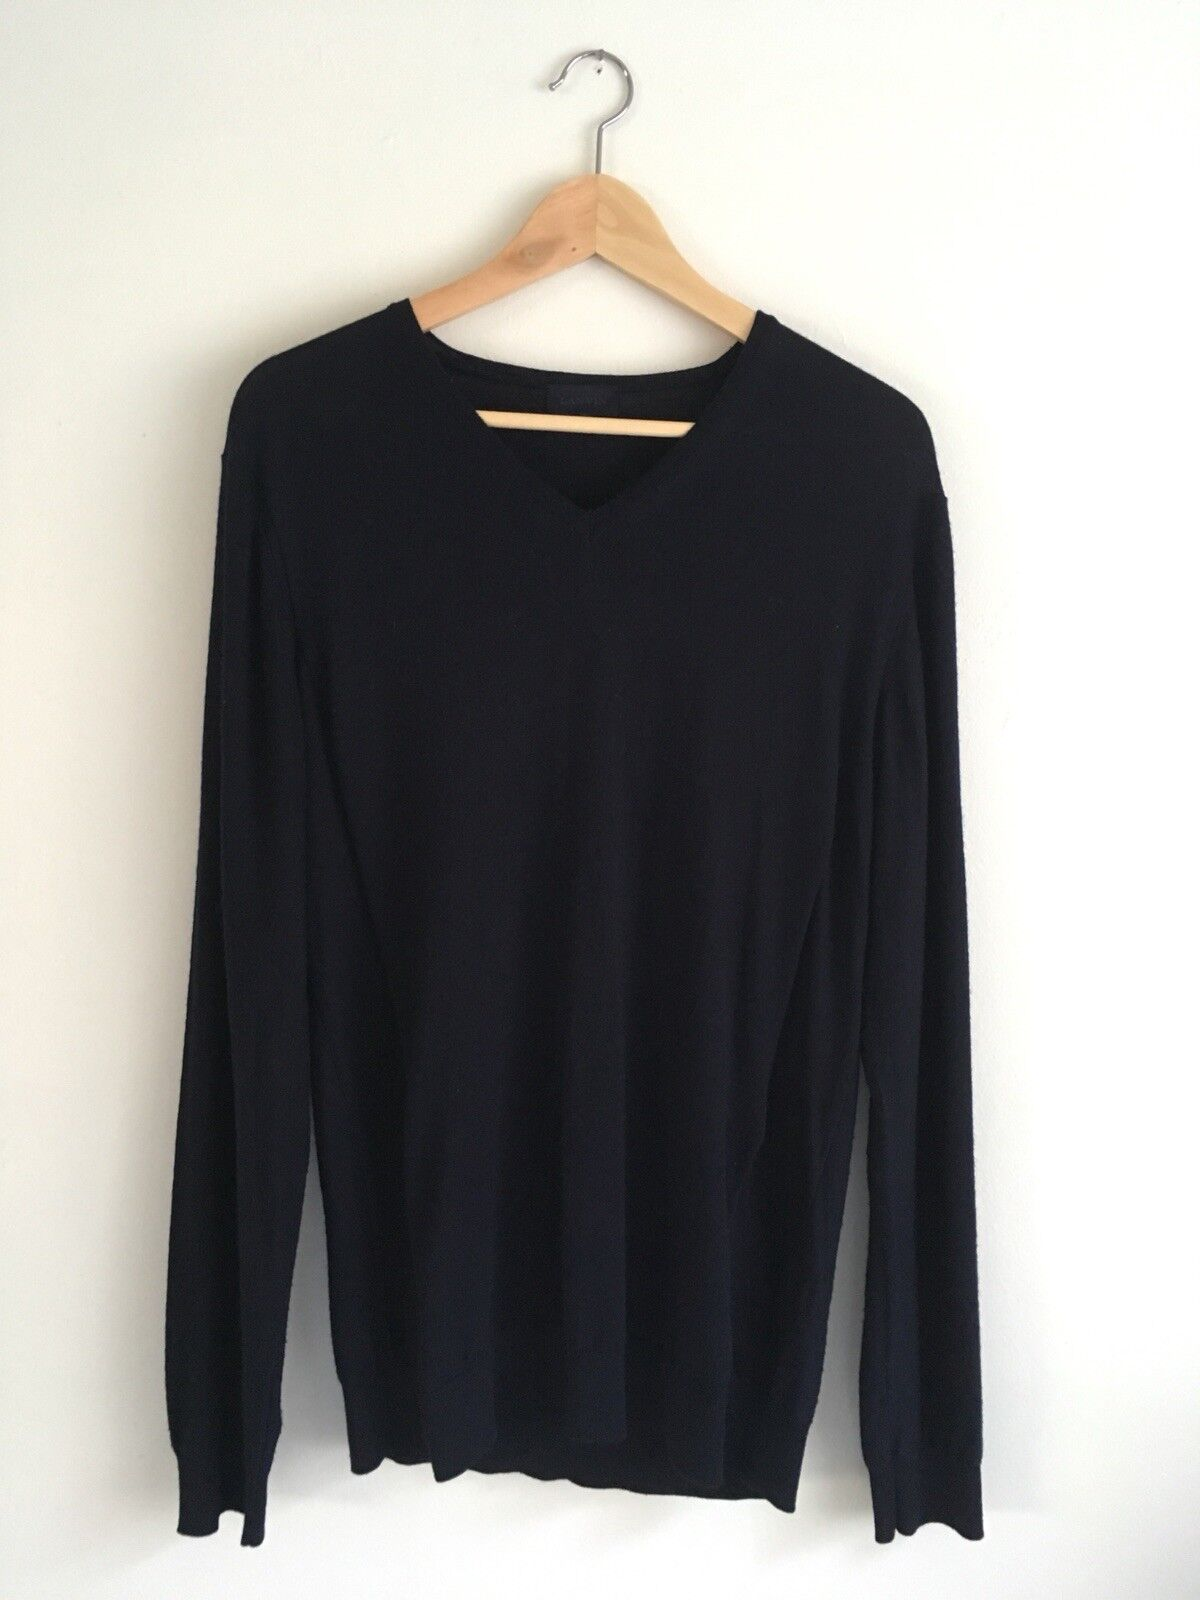 Lanvin Navy Blau V-Neck Merino Wool Sweater Größe Large Made In